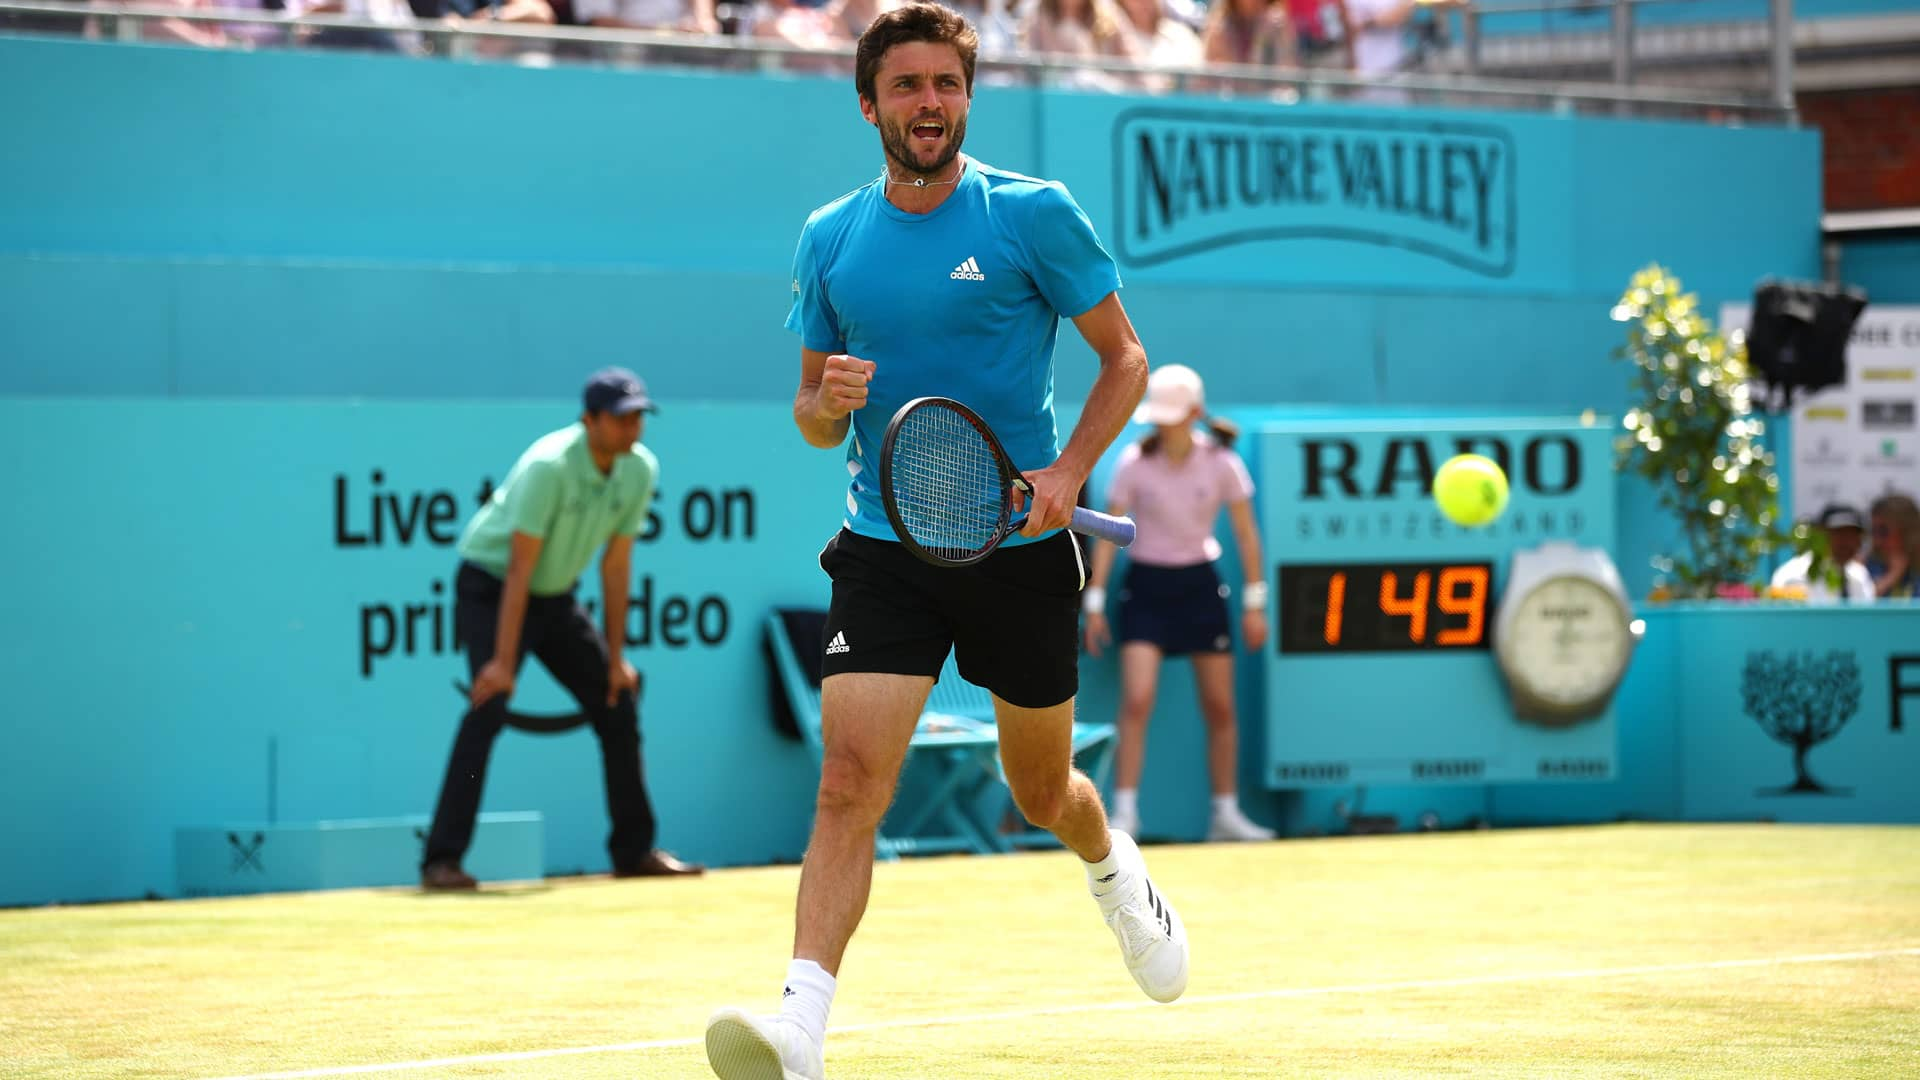 Gilles Simon reacts at Queen's Club 2019